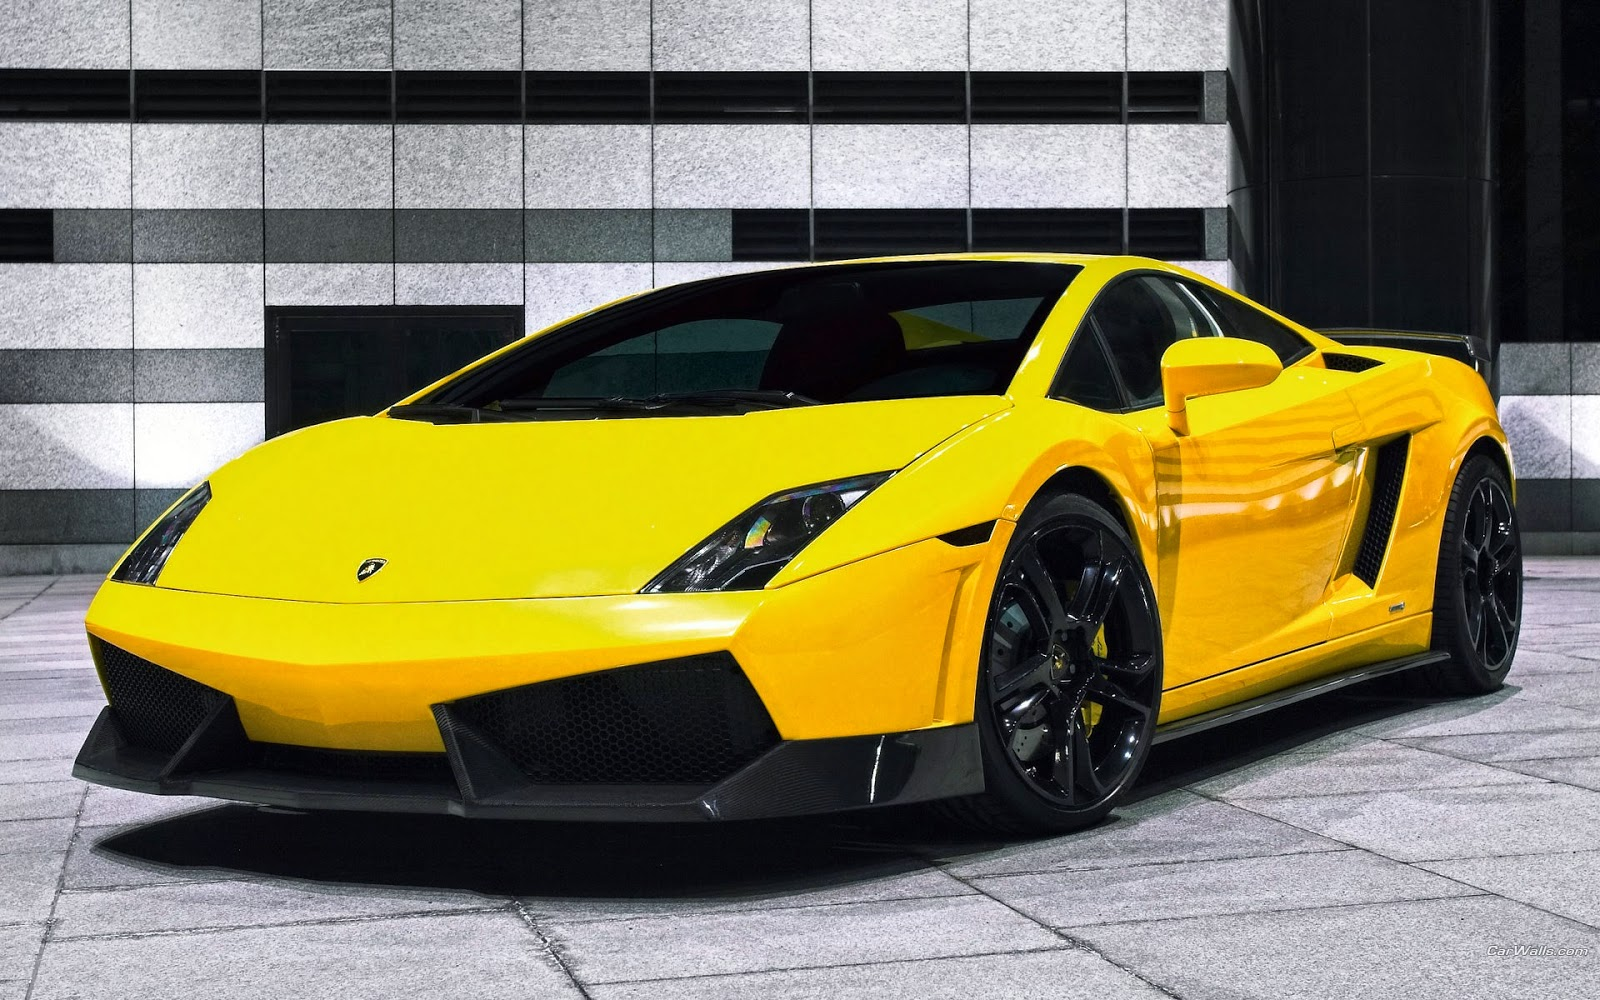 Hd Wallpapers Lamborghini Gallardo